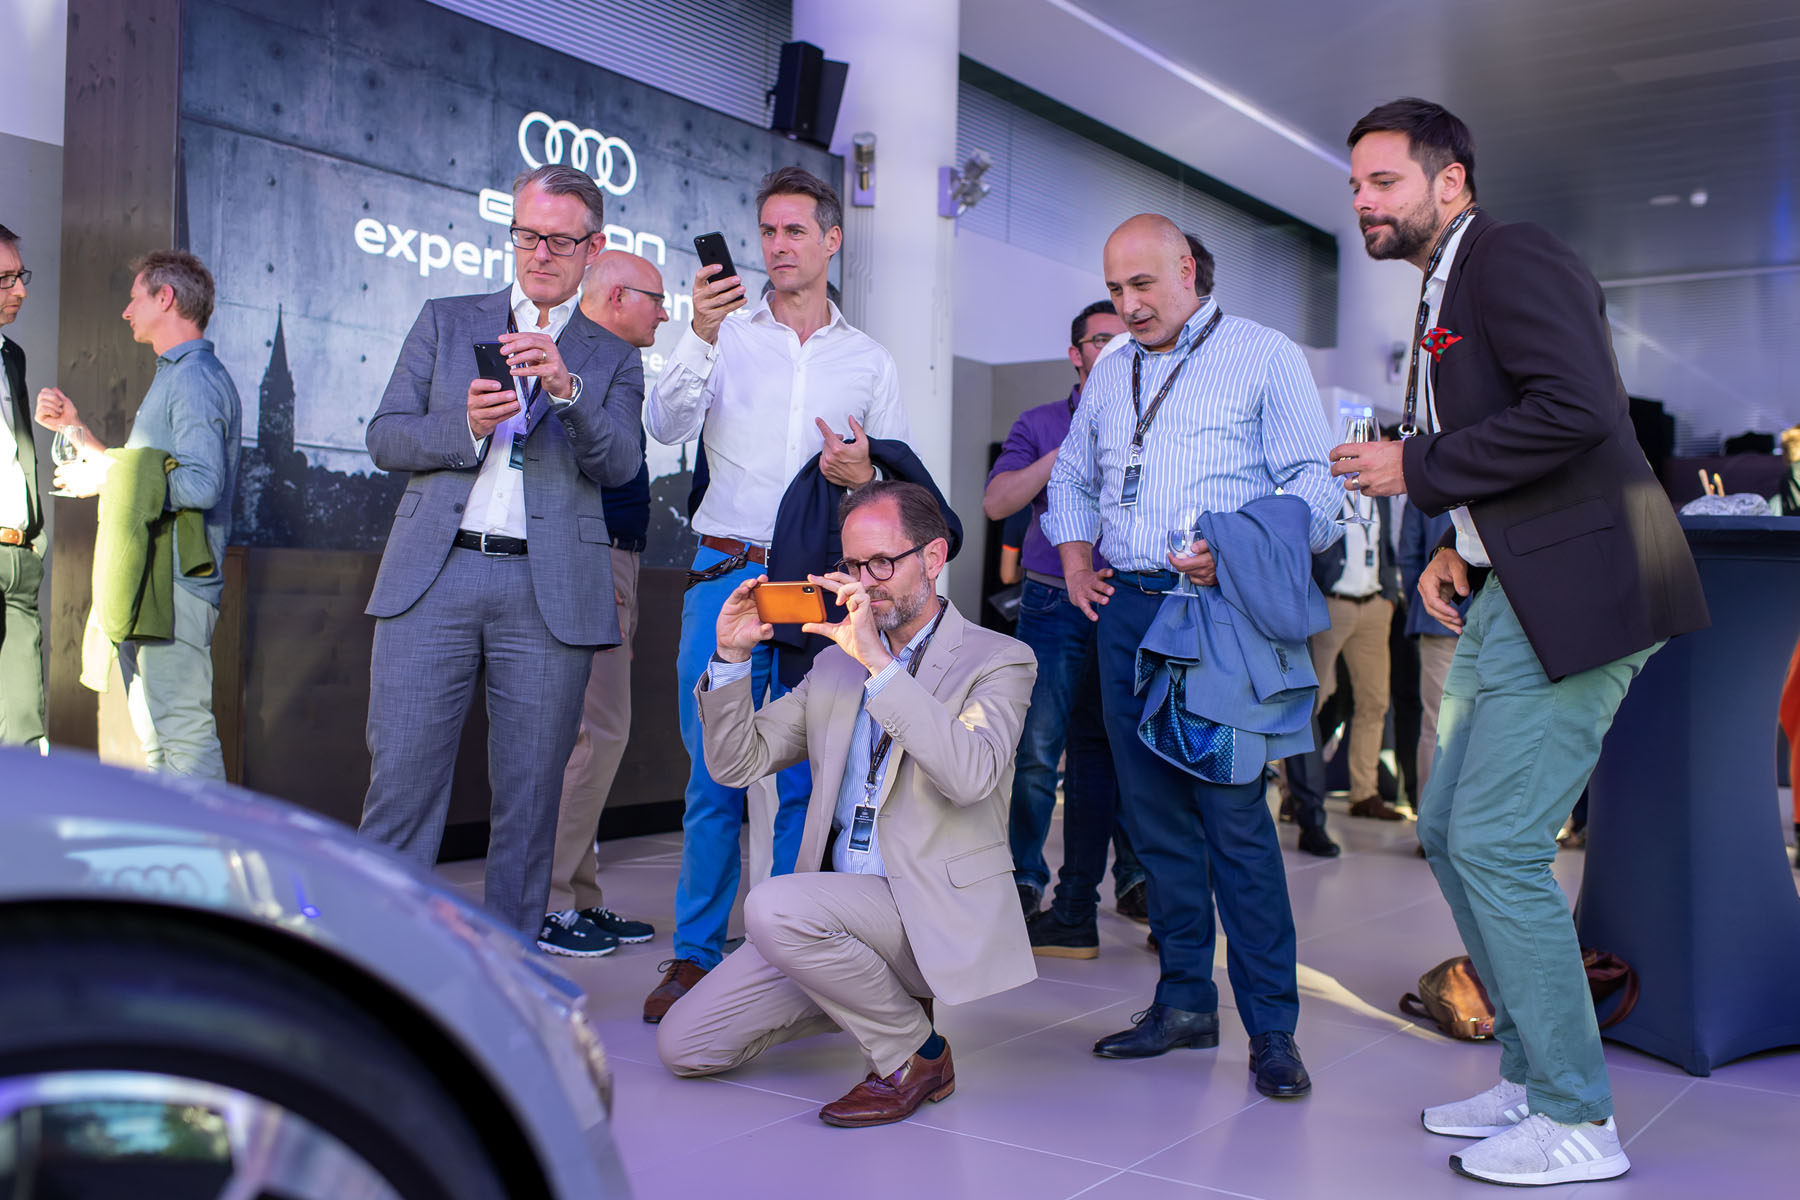 Impressioni dell'Audi e-tron experience center all'Utoquai 47 a Zurigo.